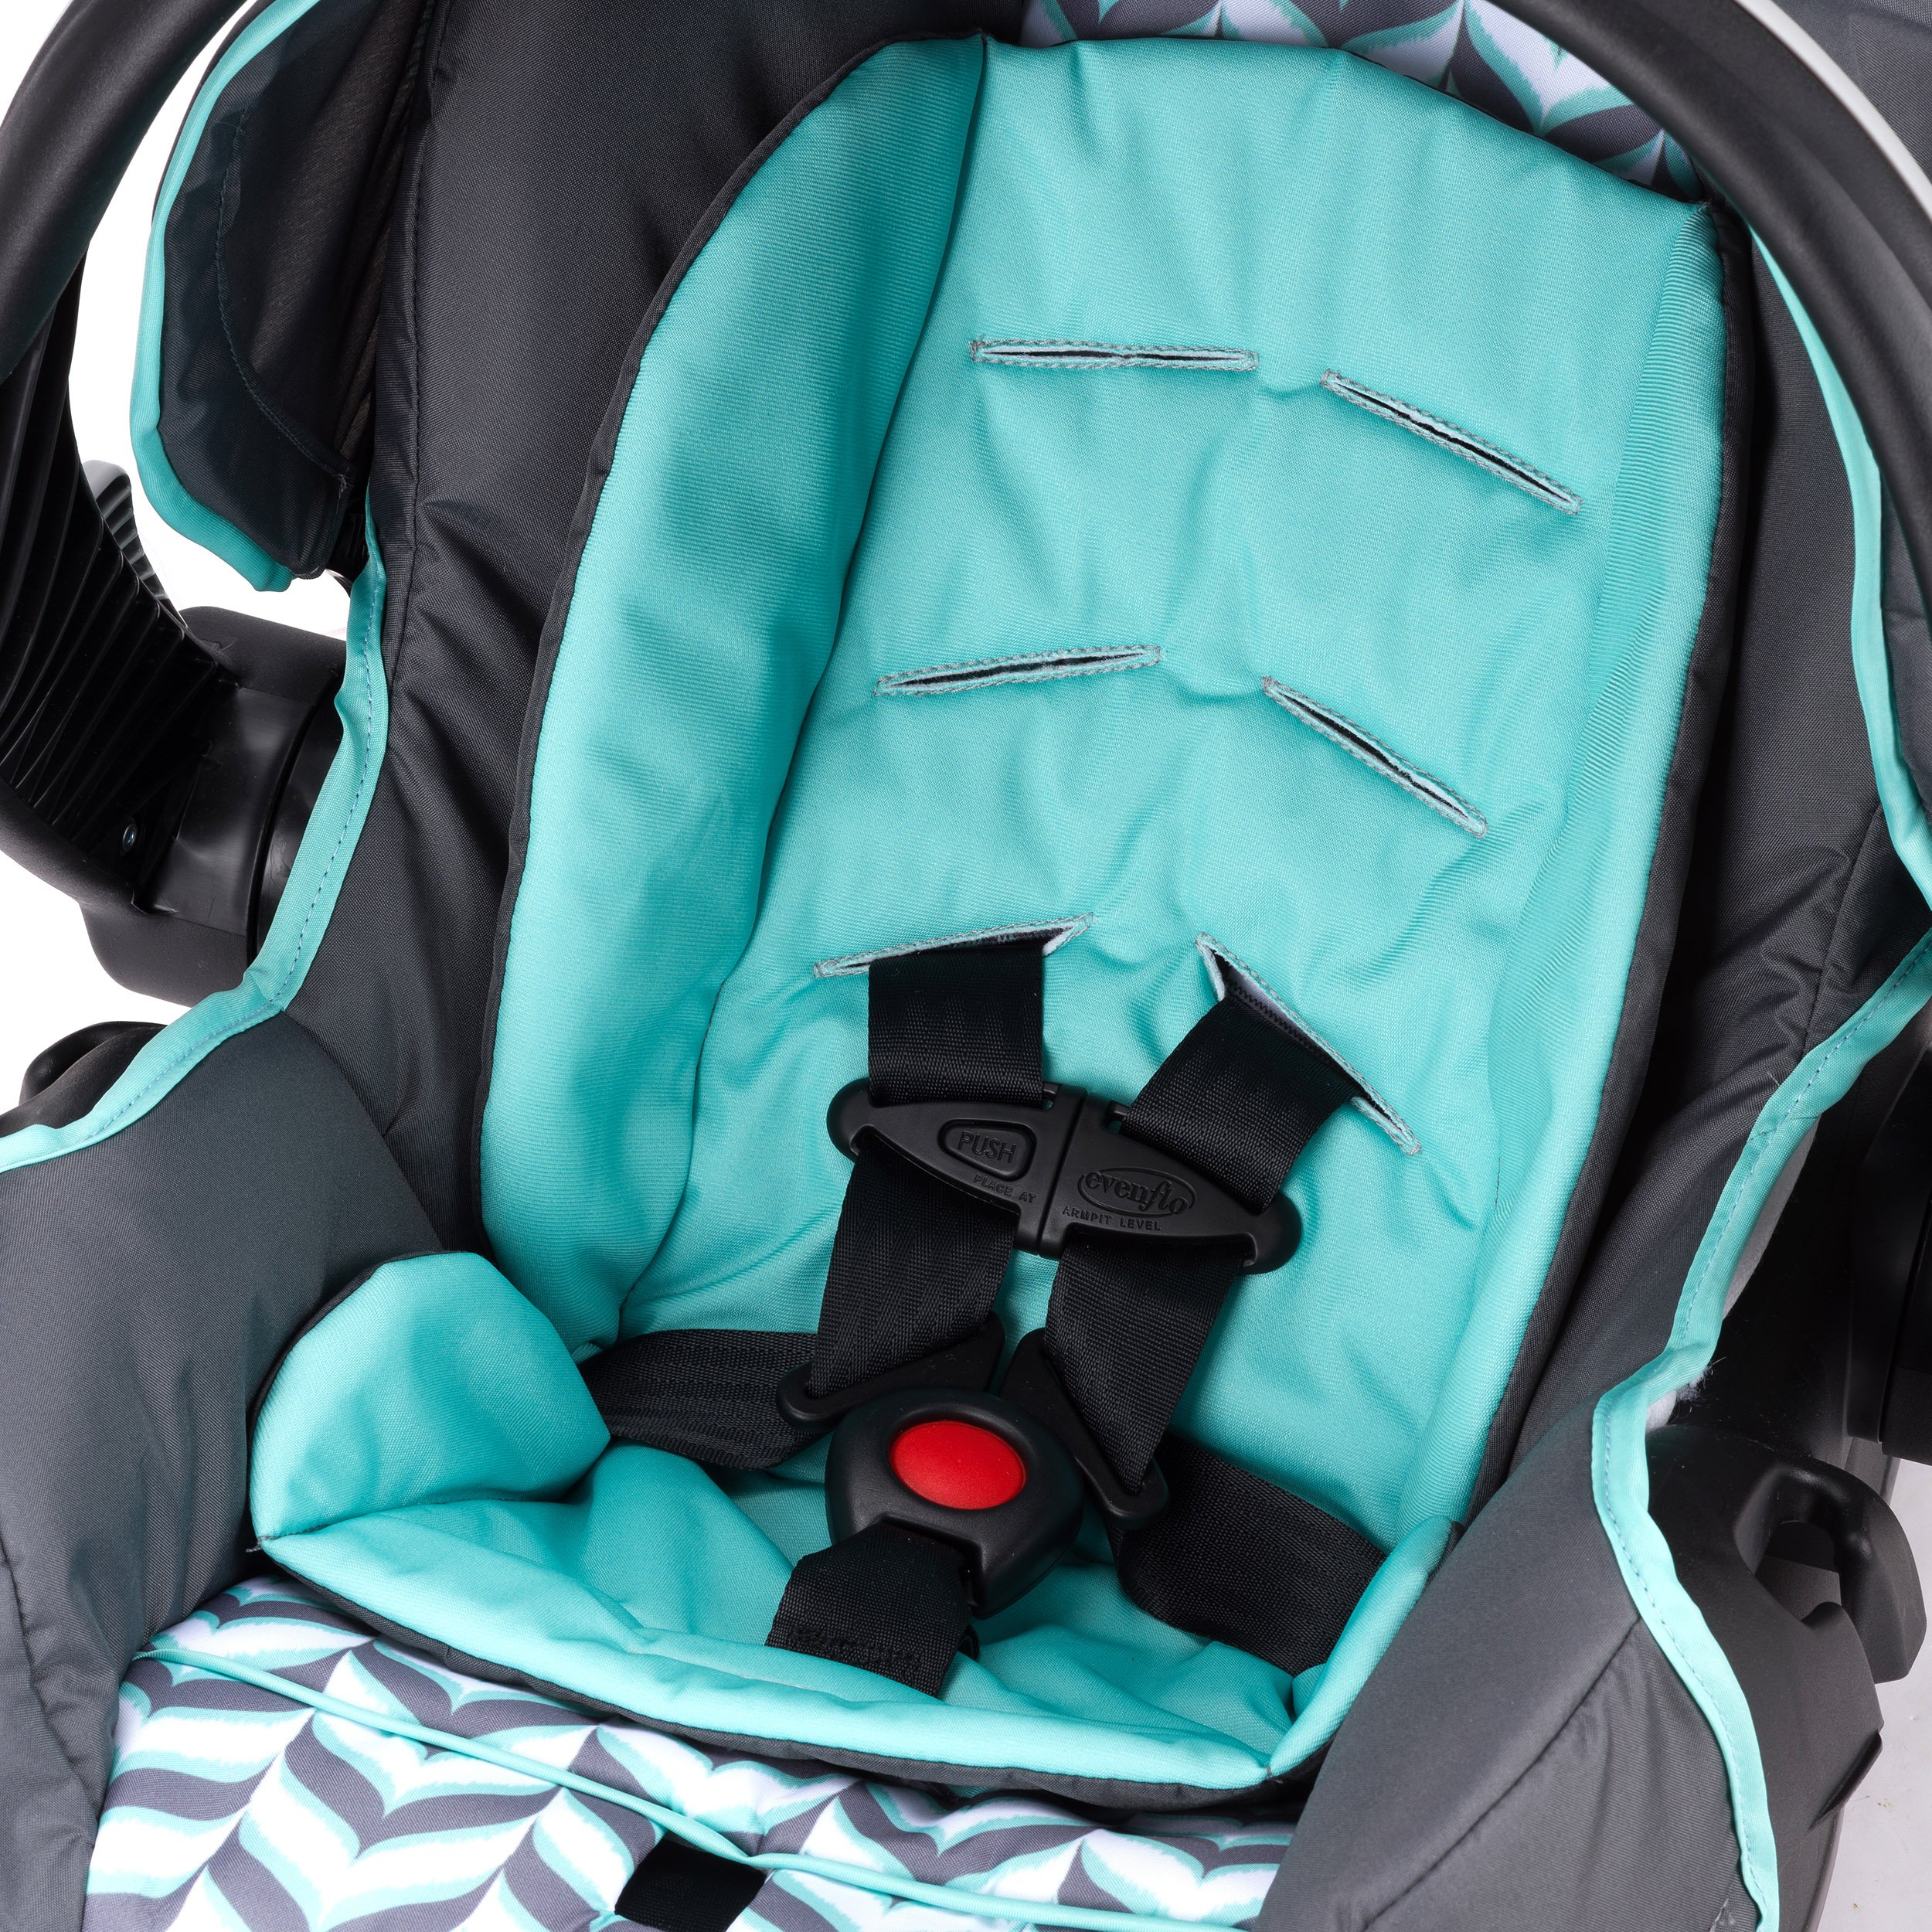 Evenflo Vive Travel System with Embrace, Spearmint Spree by Evenflo (Image #4)